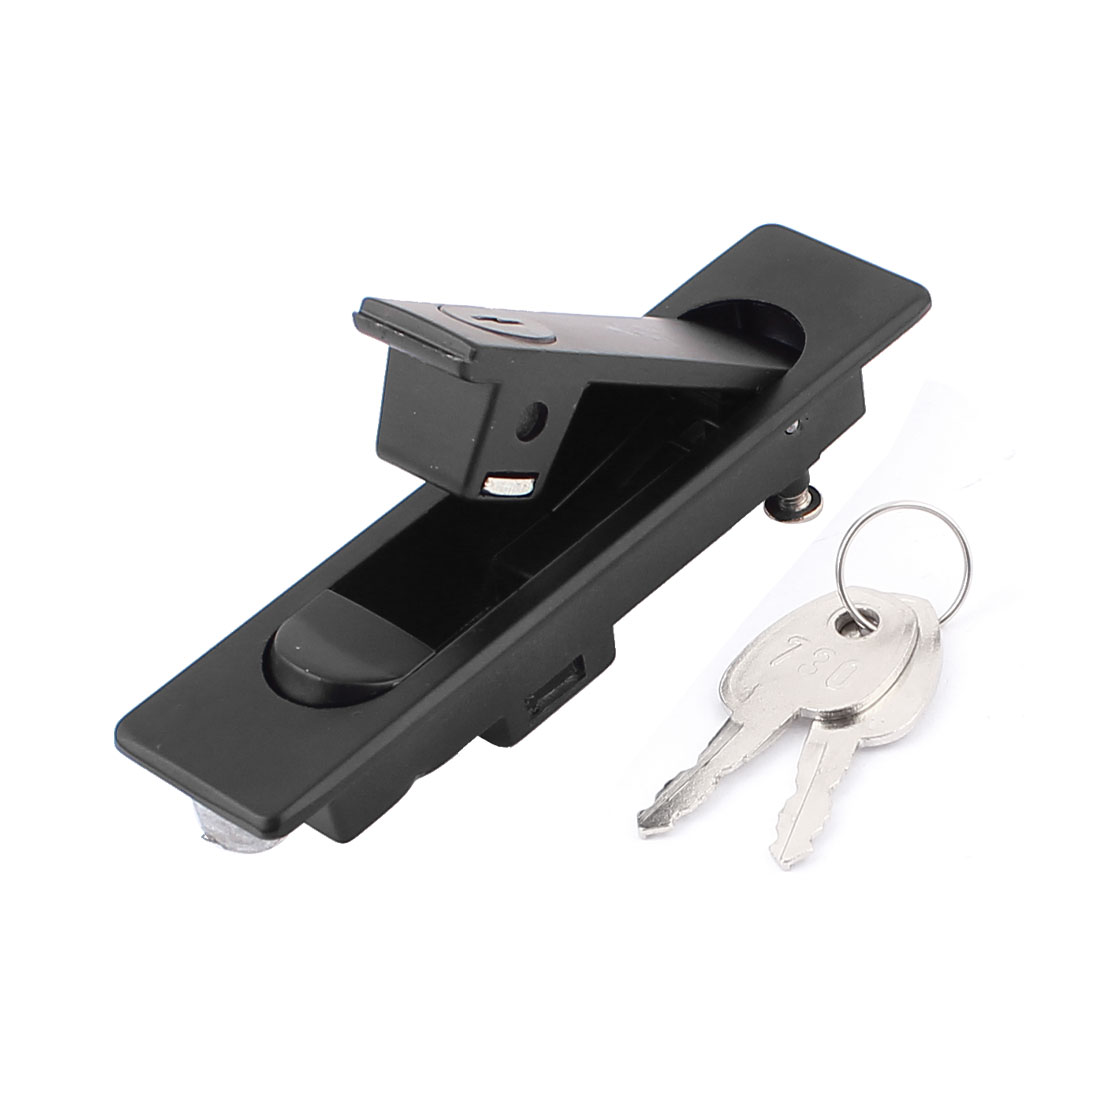 Black Metal Panel Lock Lockset for Iron Distribution Cabinet w Two Keys